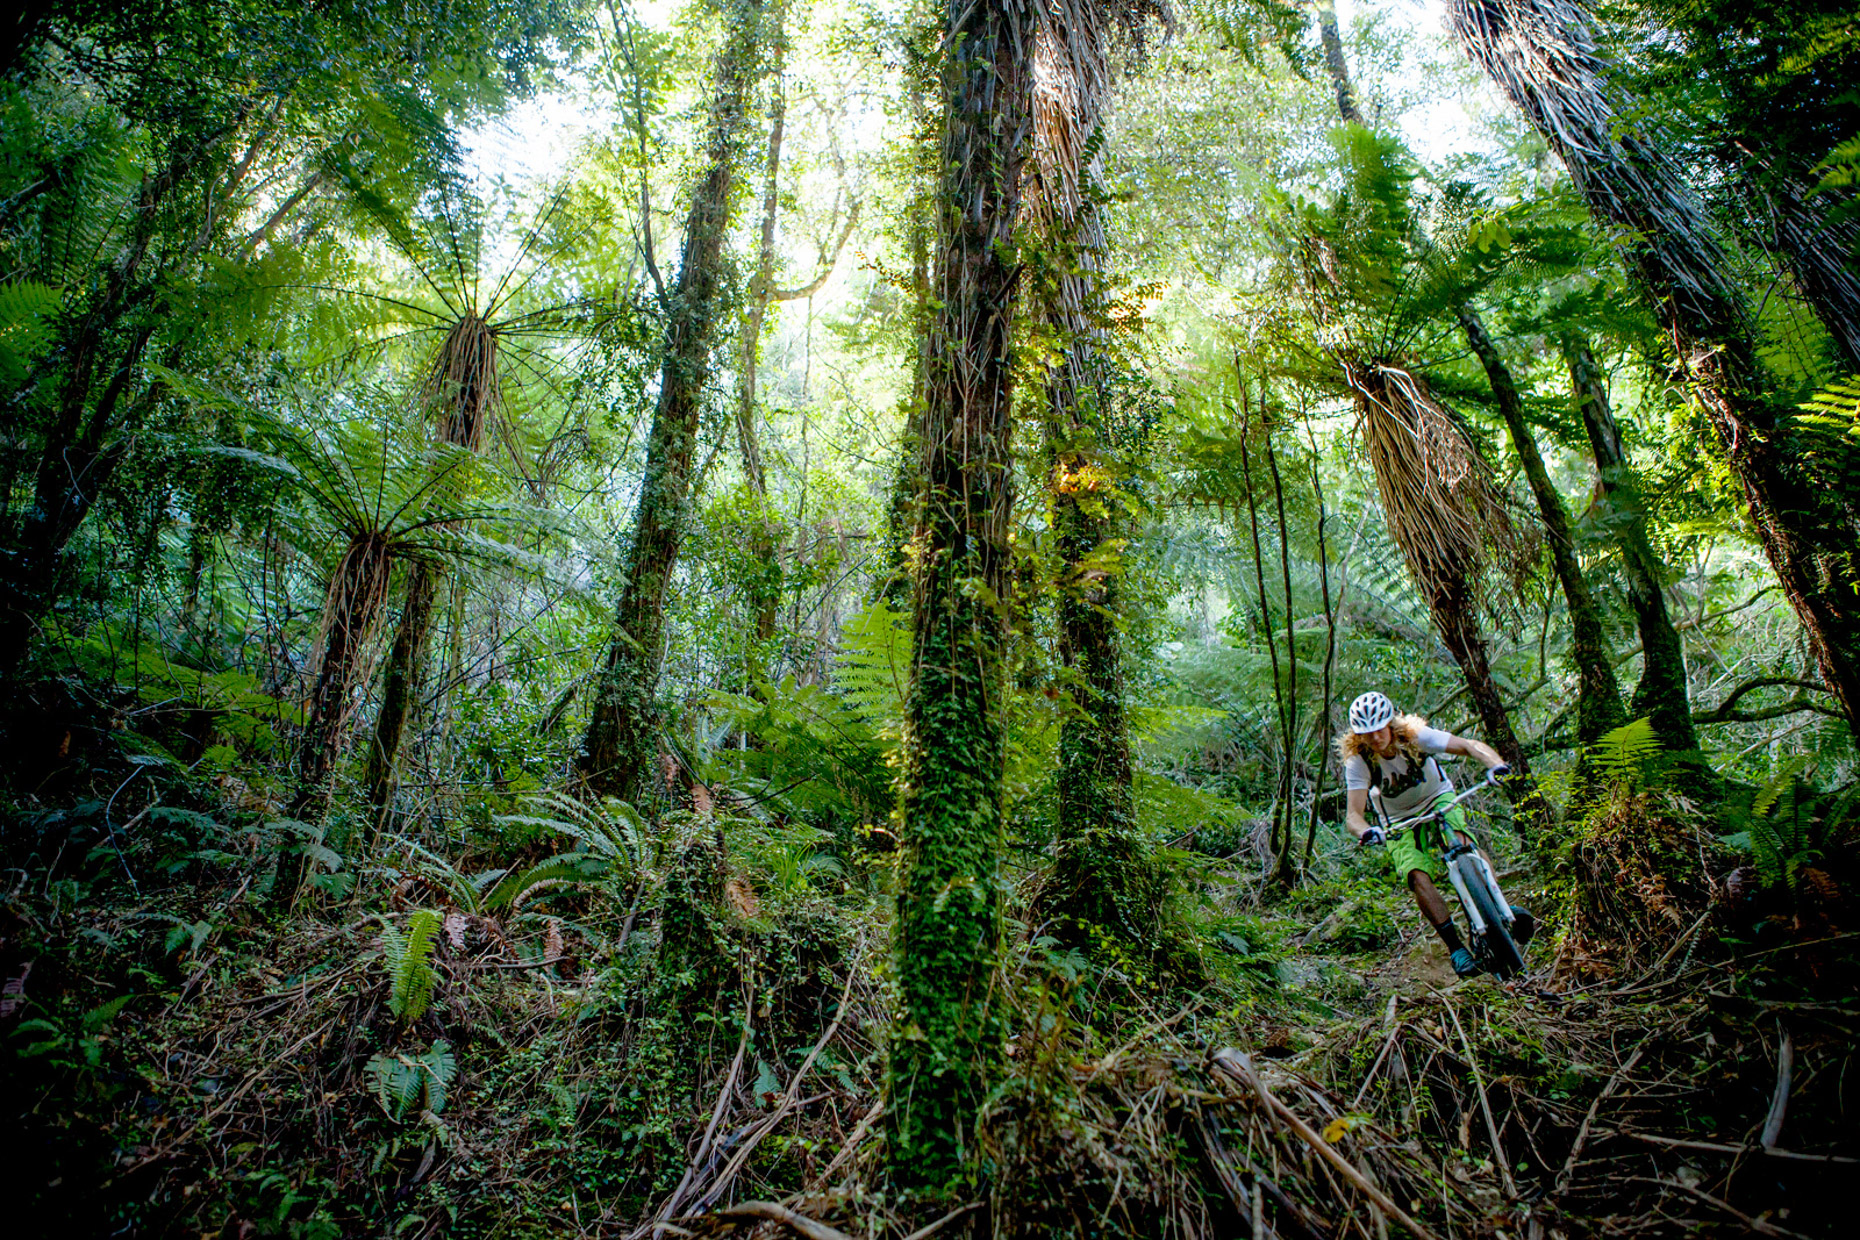 Kelly McGarry mountain biking Nydia Track, Marlborough Sounds